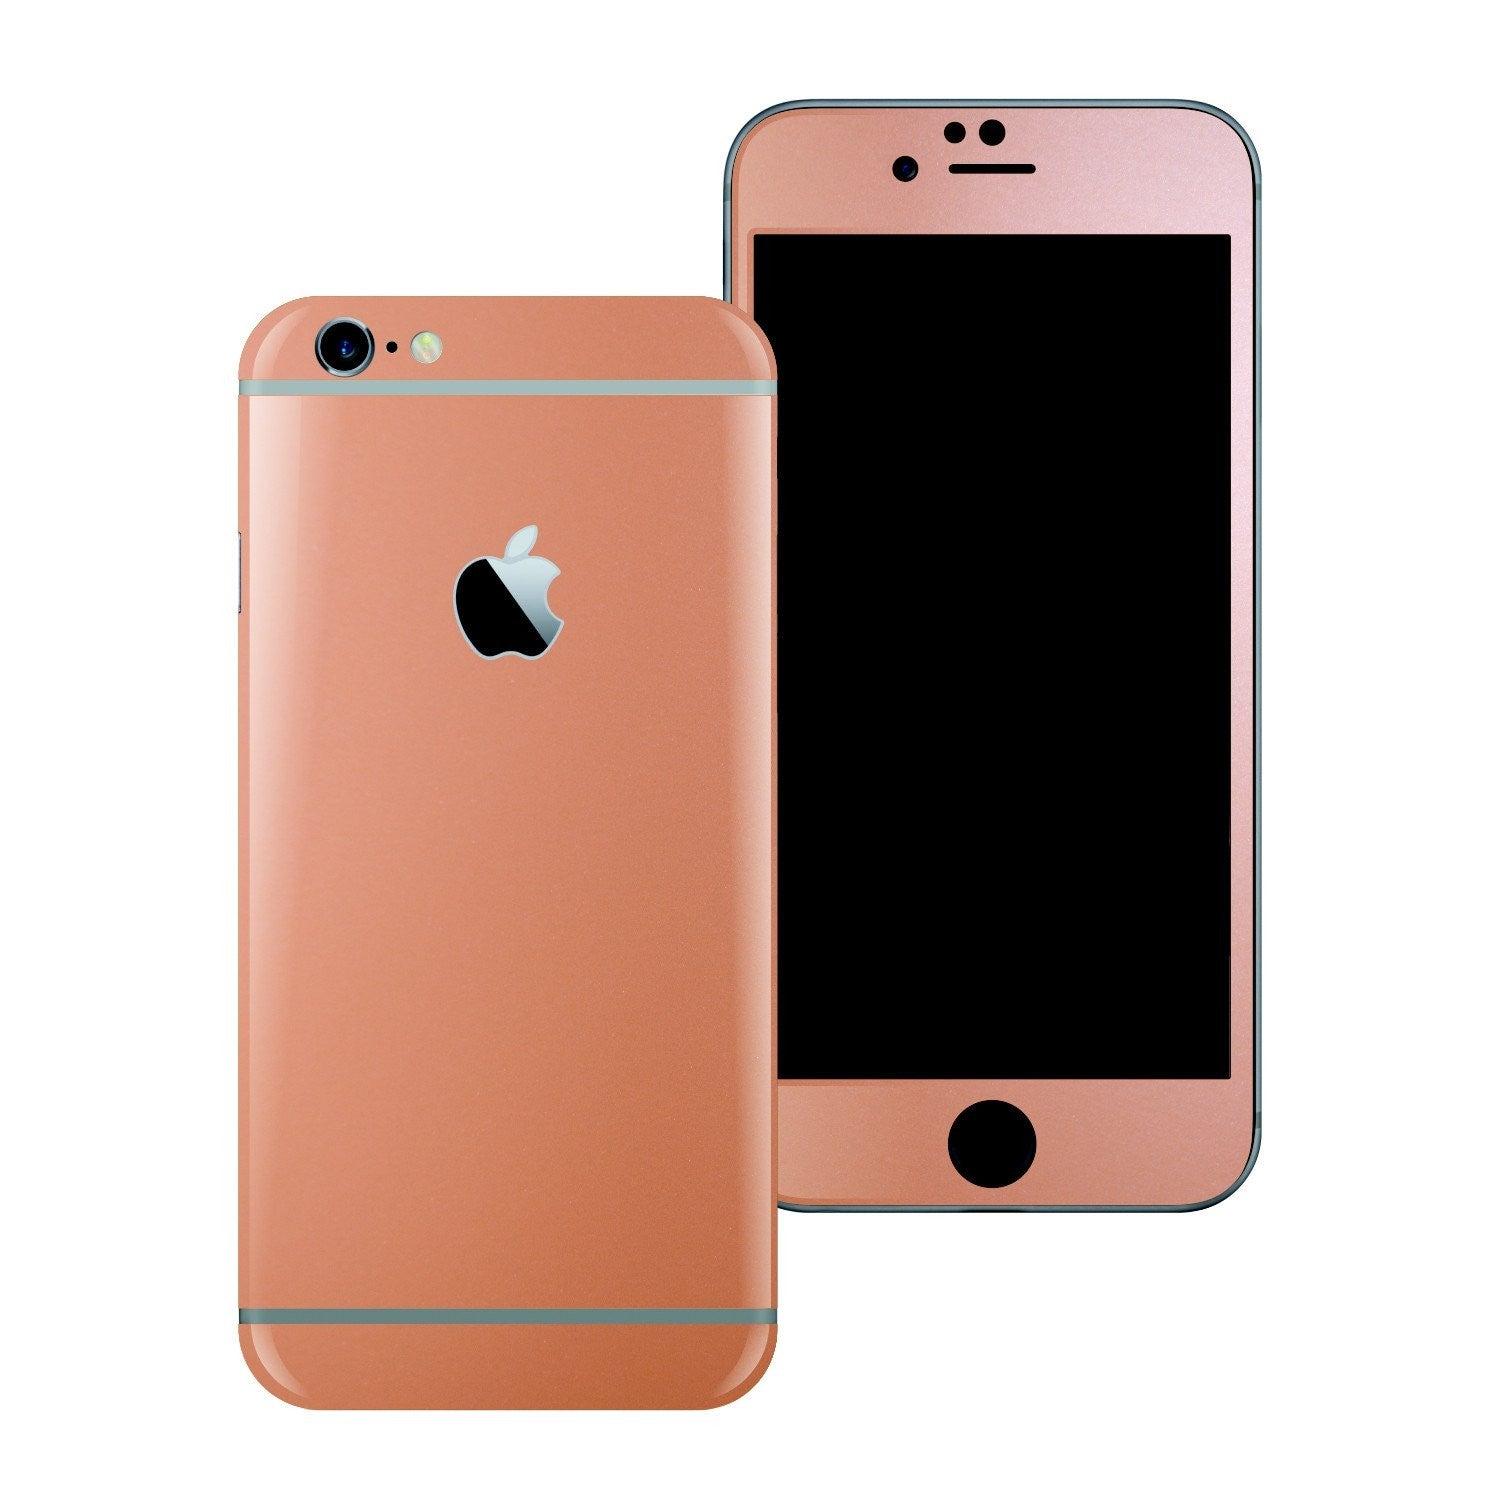 iphone 6 rose gold matt metallic skin wrap decal. Black Bedroom Furniture Sets. Home Design Ideas